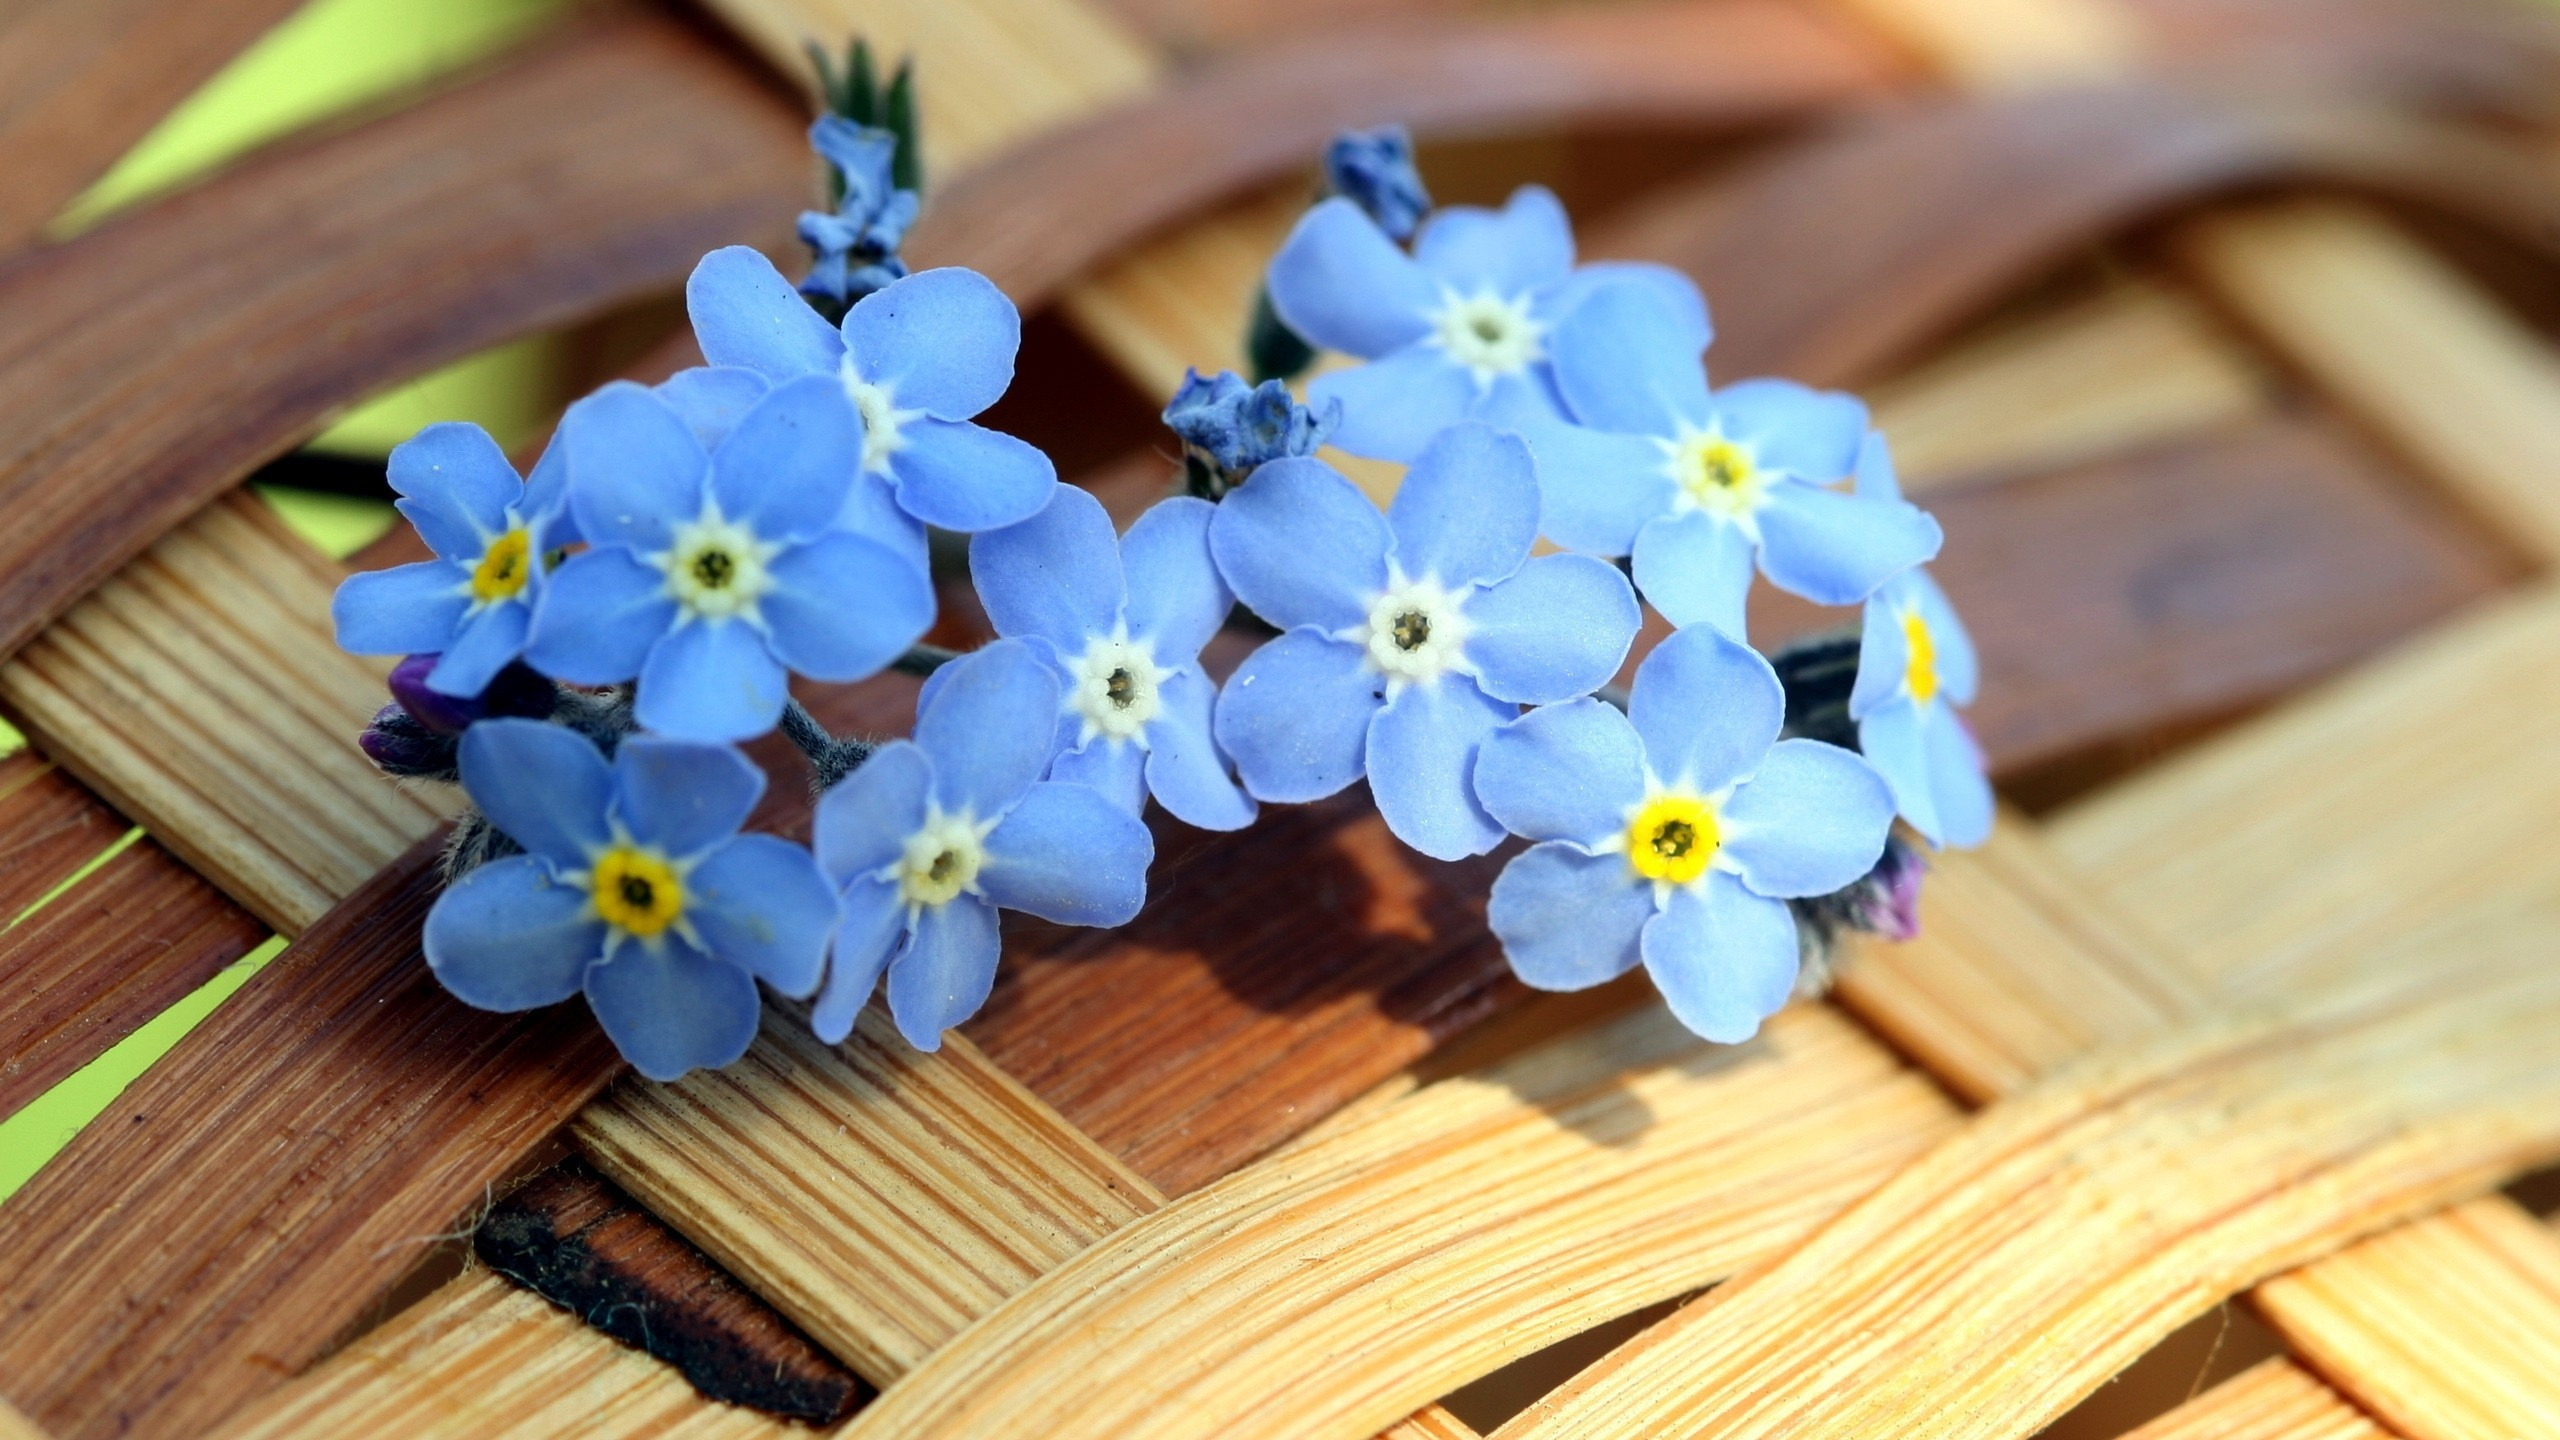 2560x1440 Blue Forget-me-not Flowers